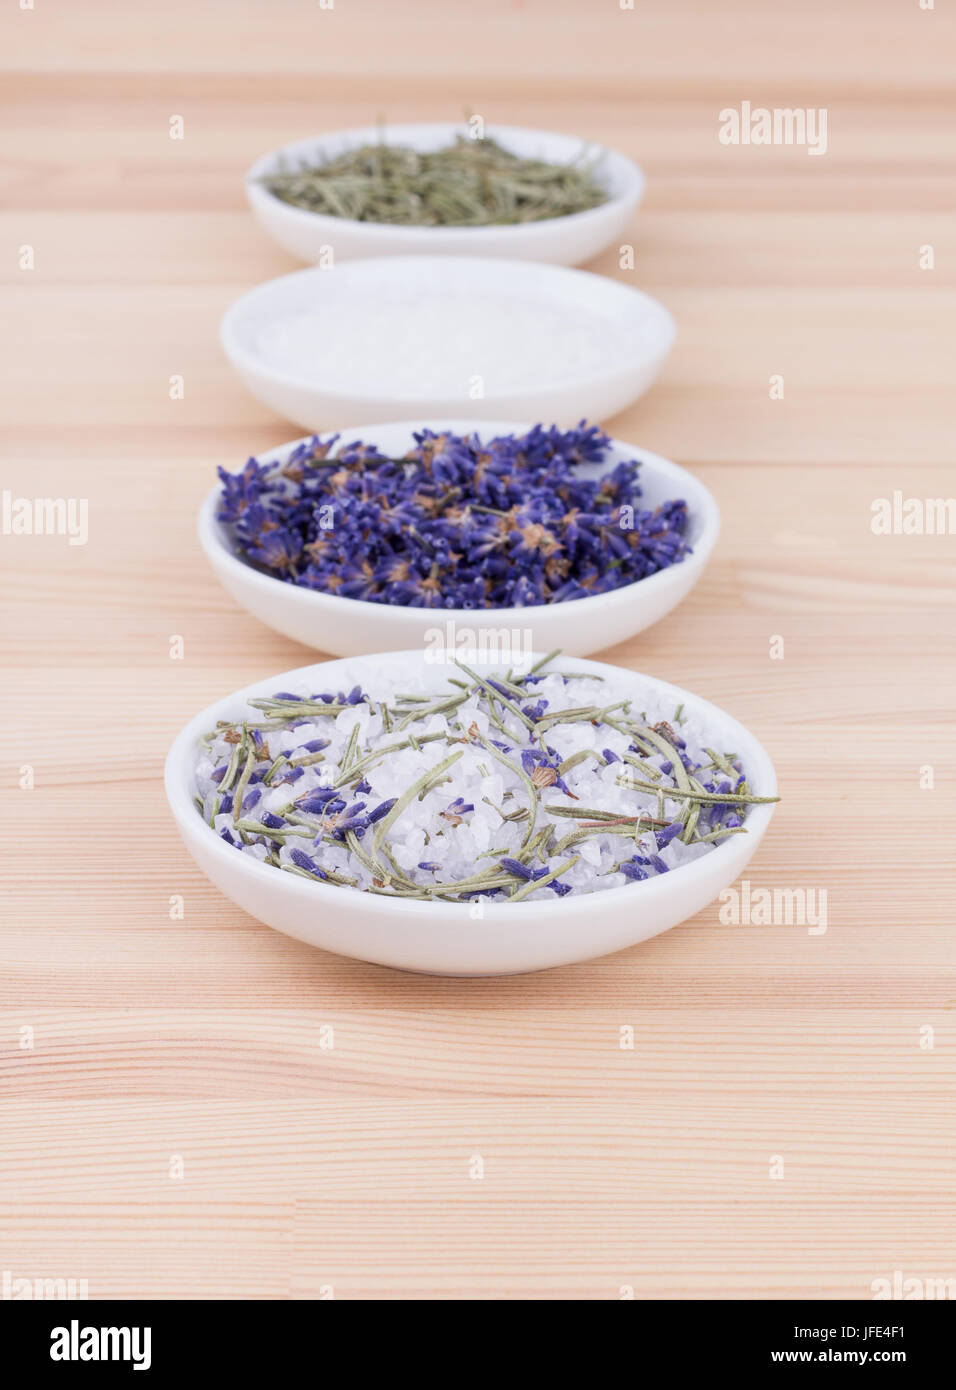 Herb salt with rosemary and lavender blossoms - Stock Image